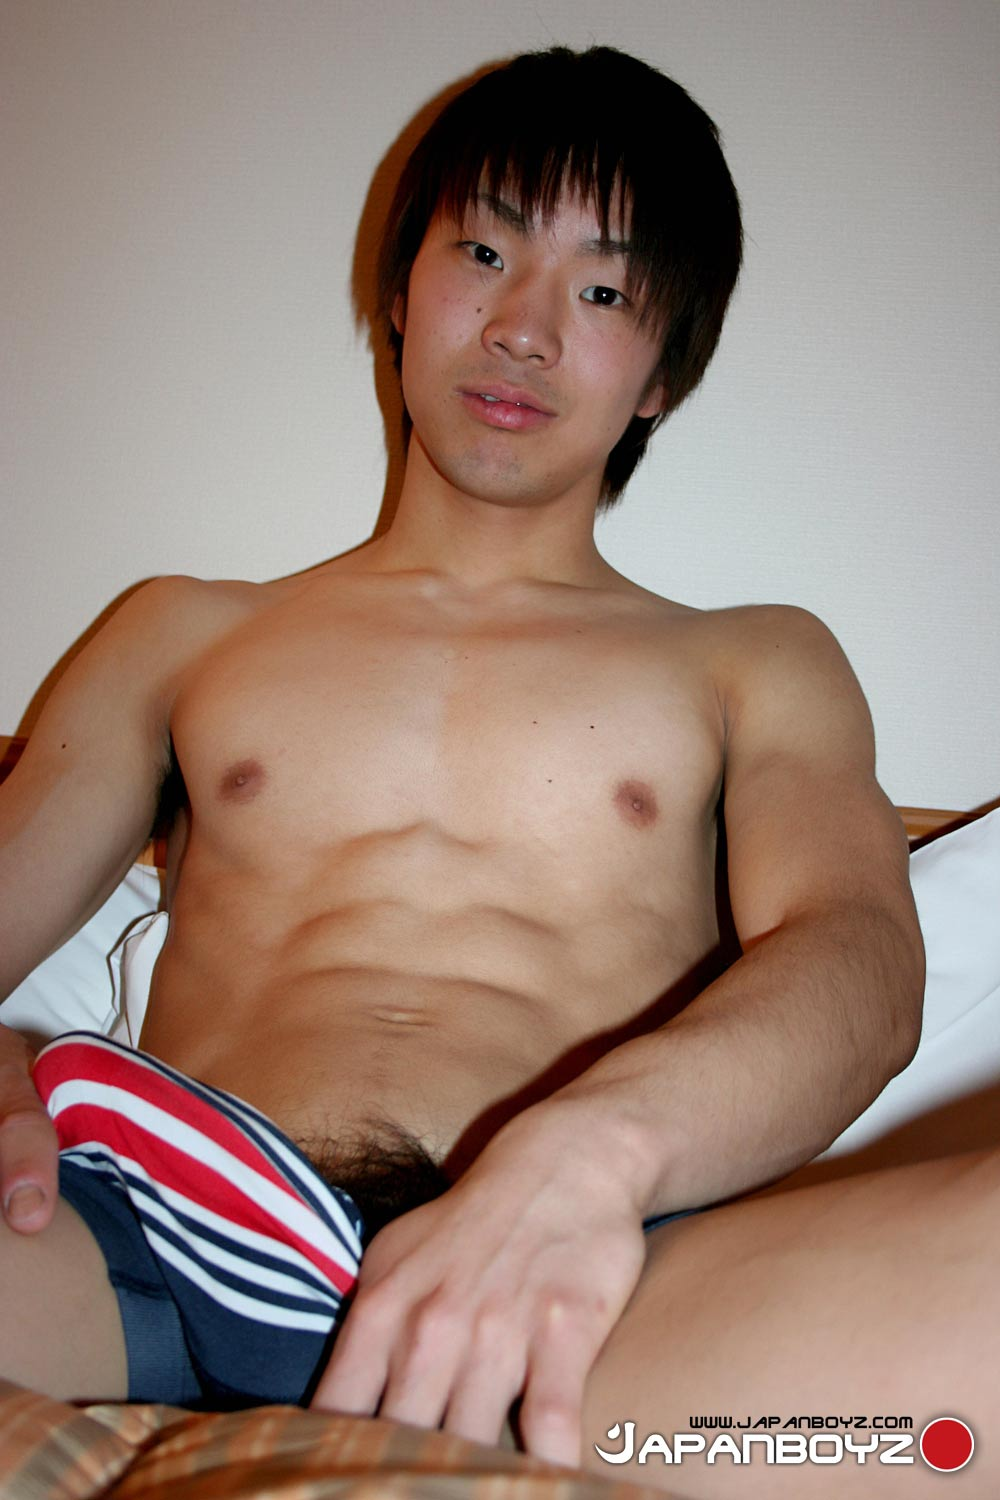 JapanBoyz Satoshi Bisexual Jock Jerking Big Thick Uncut Asian Cock 04 Japanese Bisexual Twink Jock Jerks His Thick Uncut Hairy Asian Cock